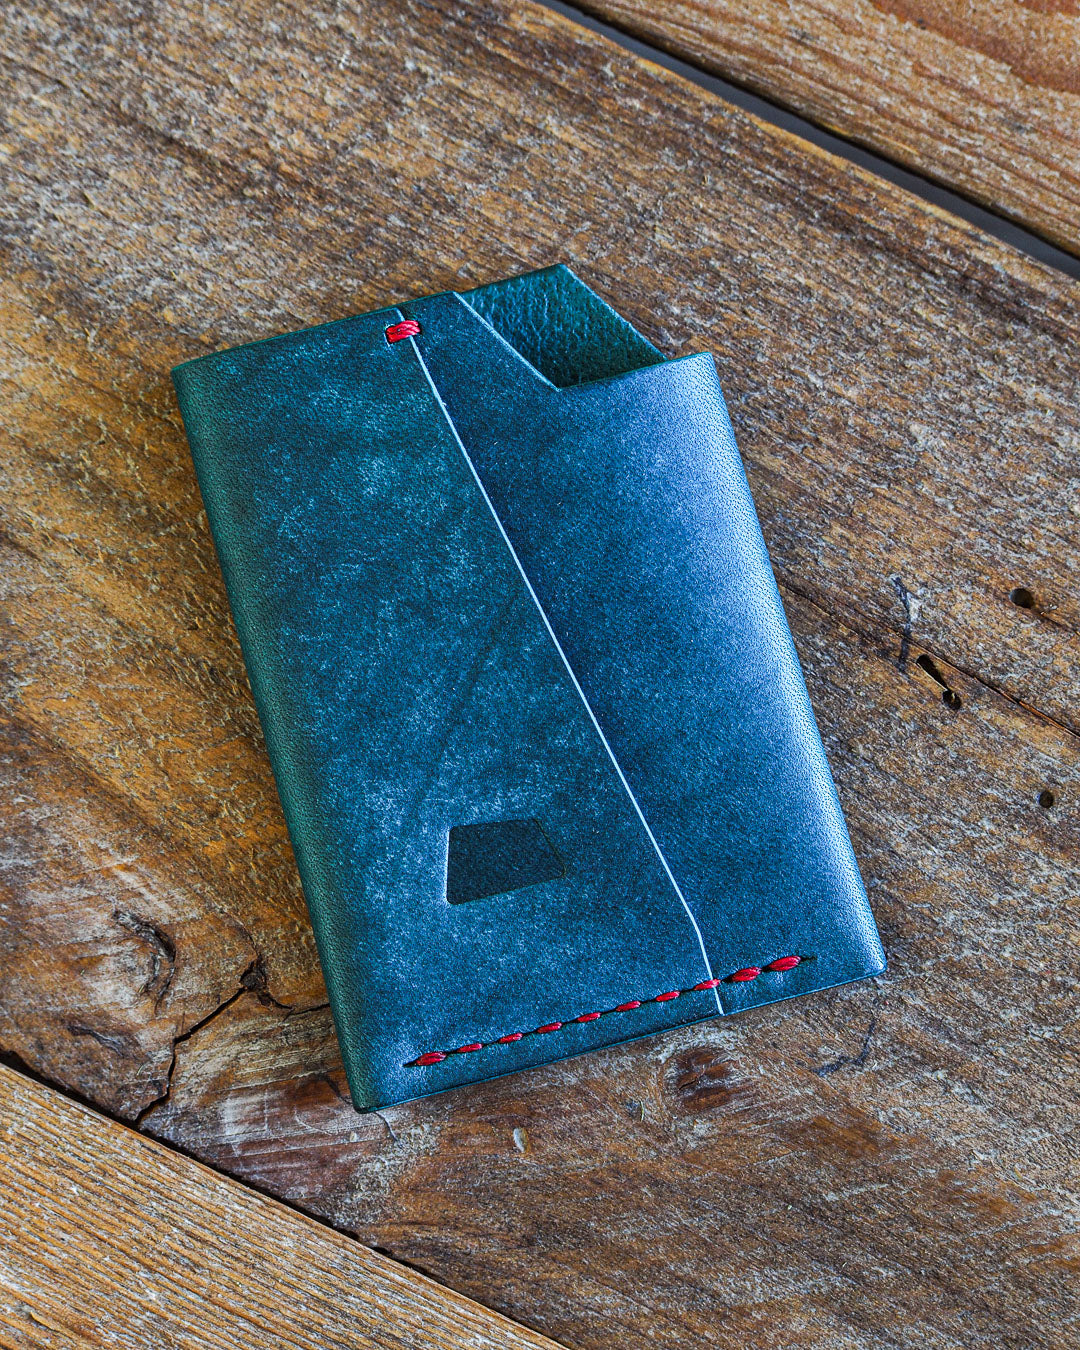 Luava handmade leather wallet handcrafted card holder wrap cardholder made in finland vortex maya turquoise front